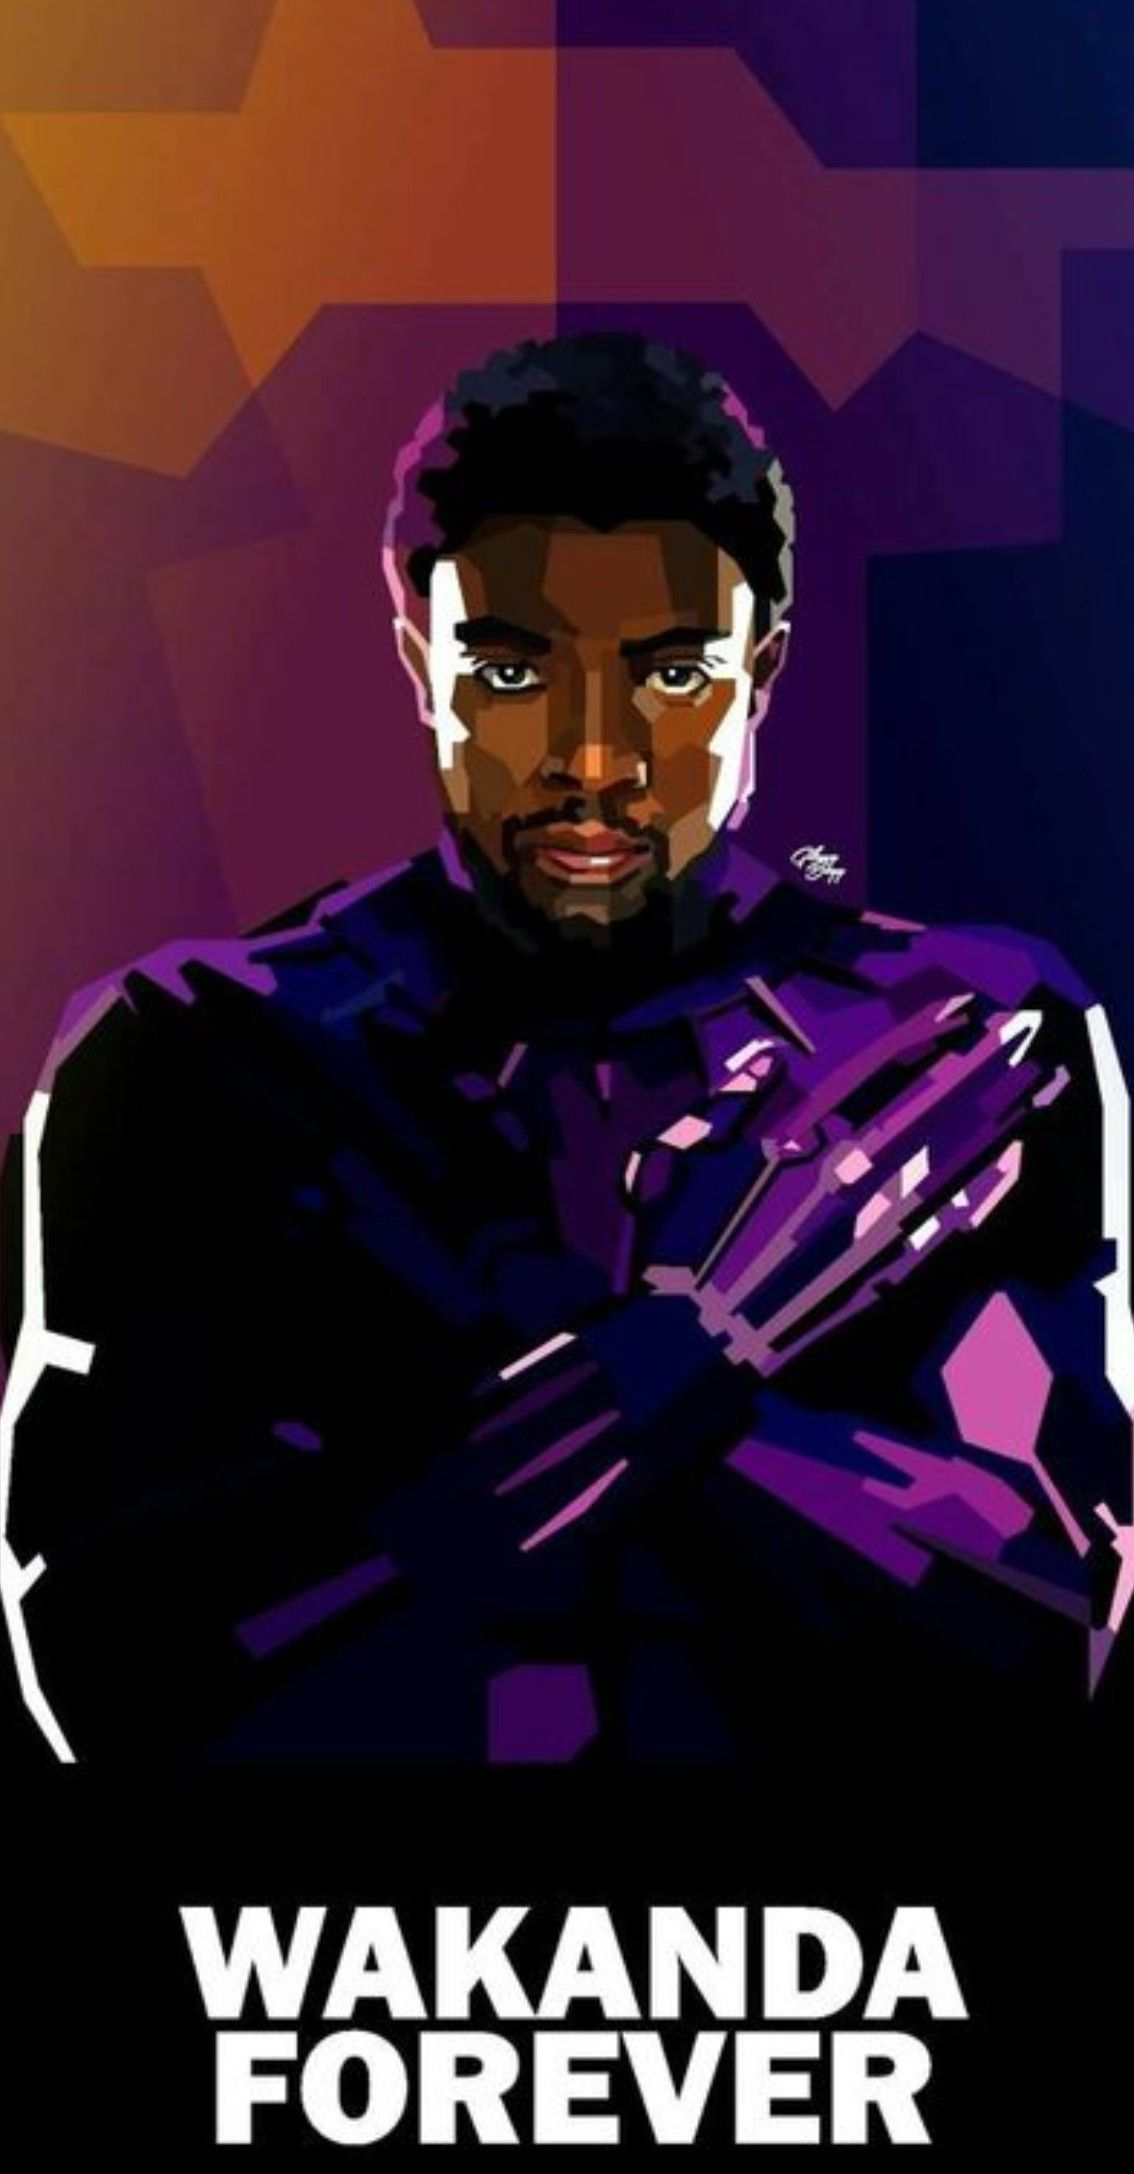 Black Panther Wakanda Forever T Challa Black Panther Marvel Black Panther Art Marvel Comics Wallpaper